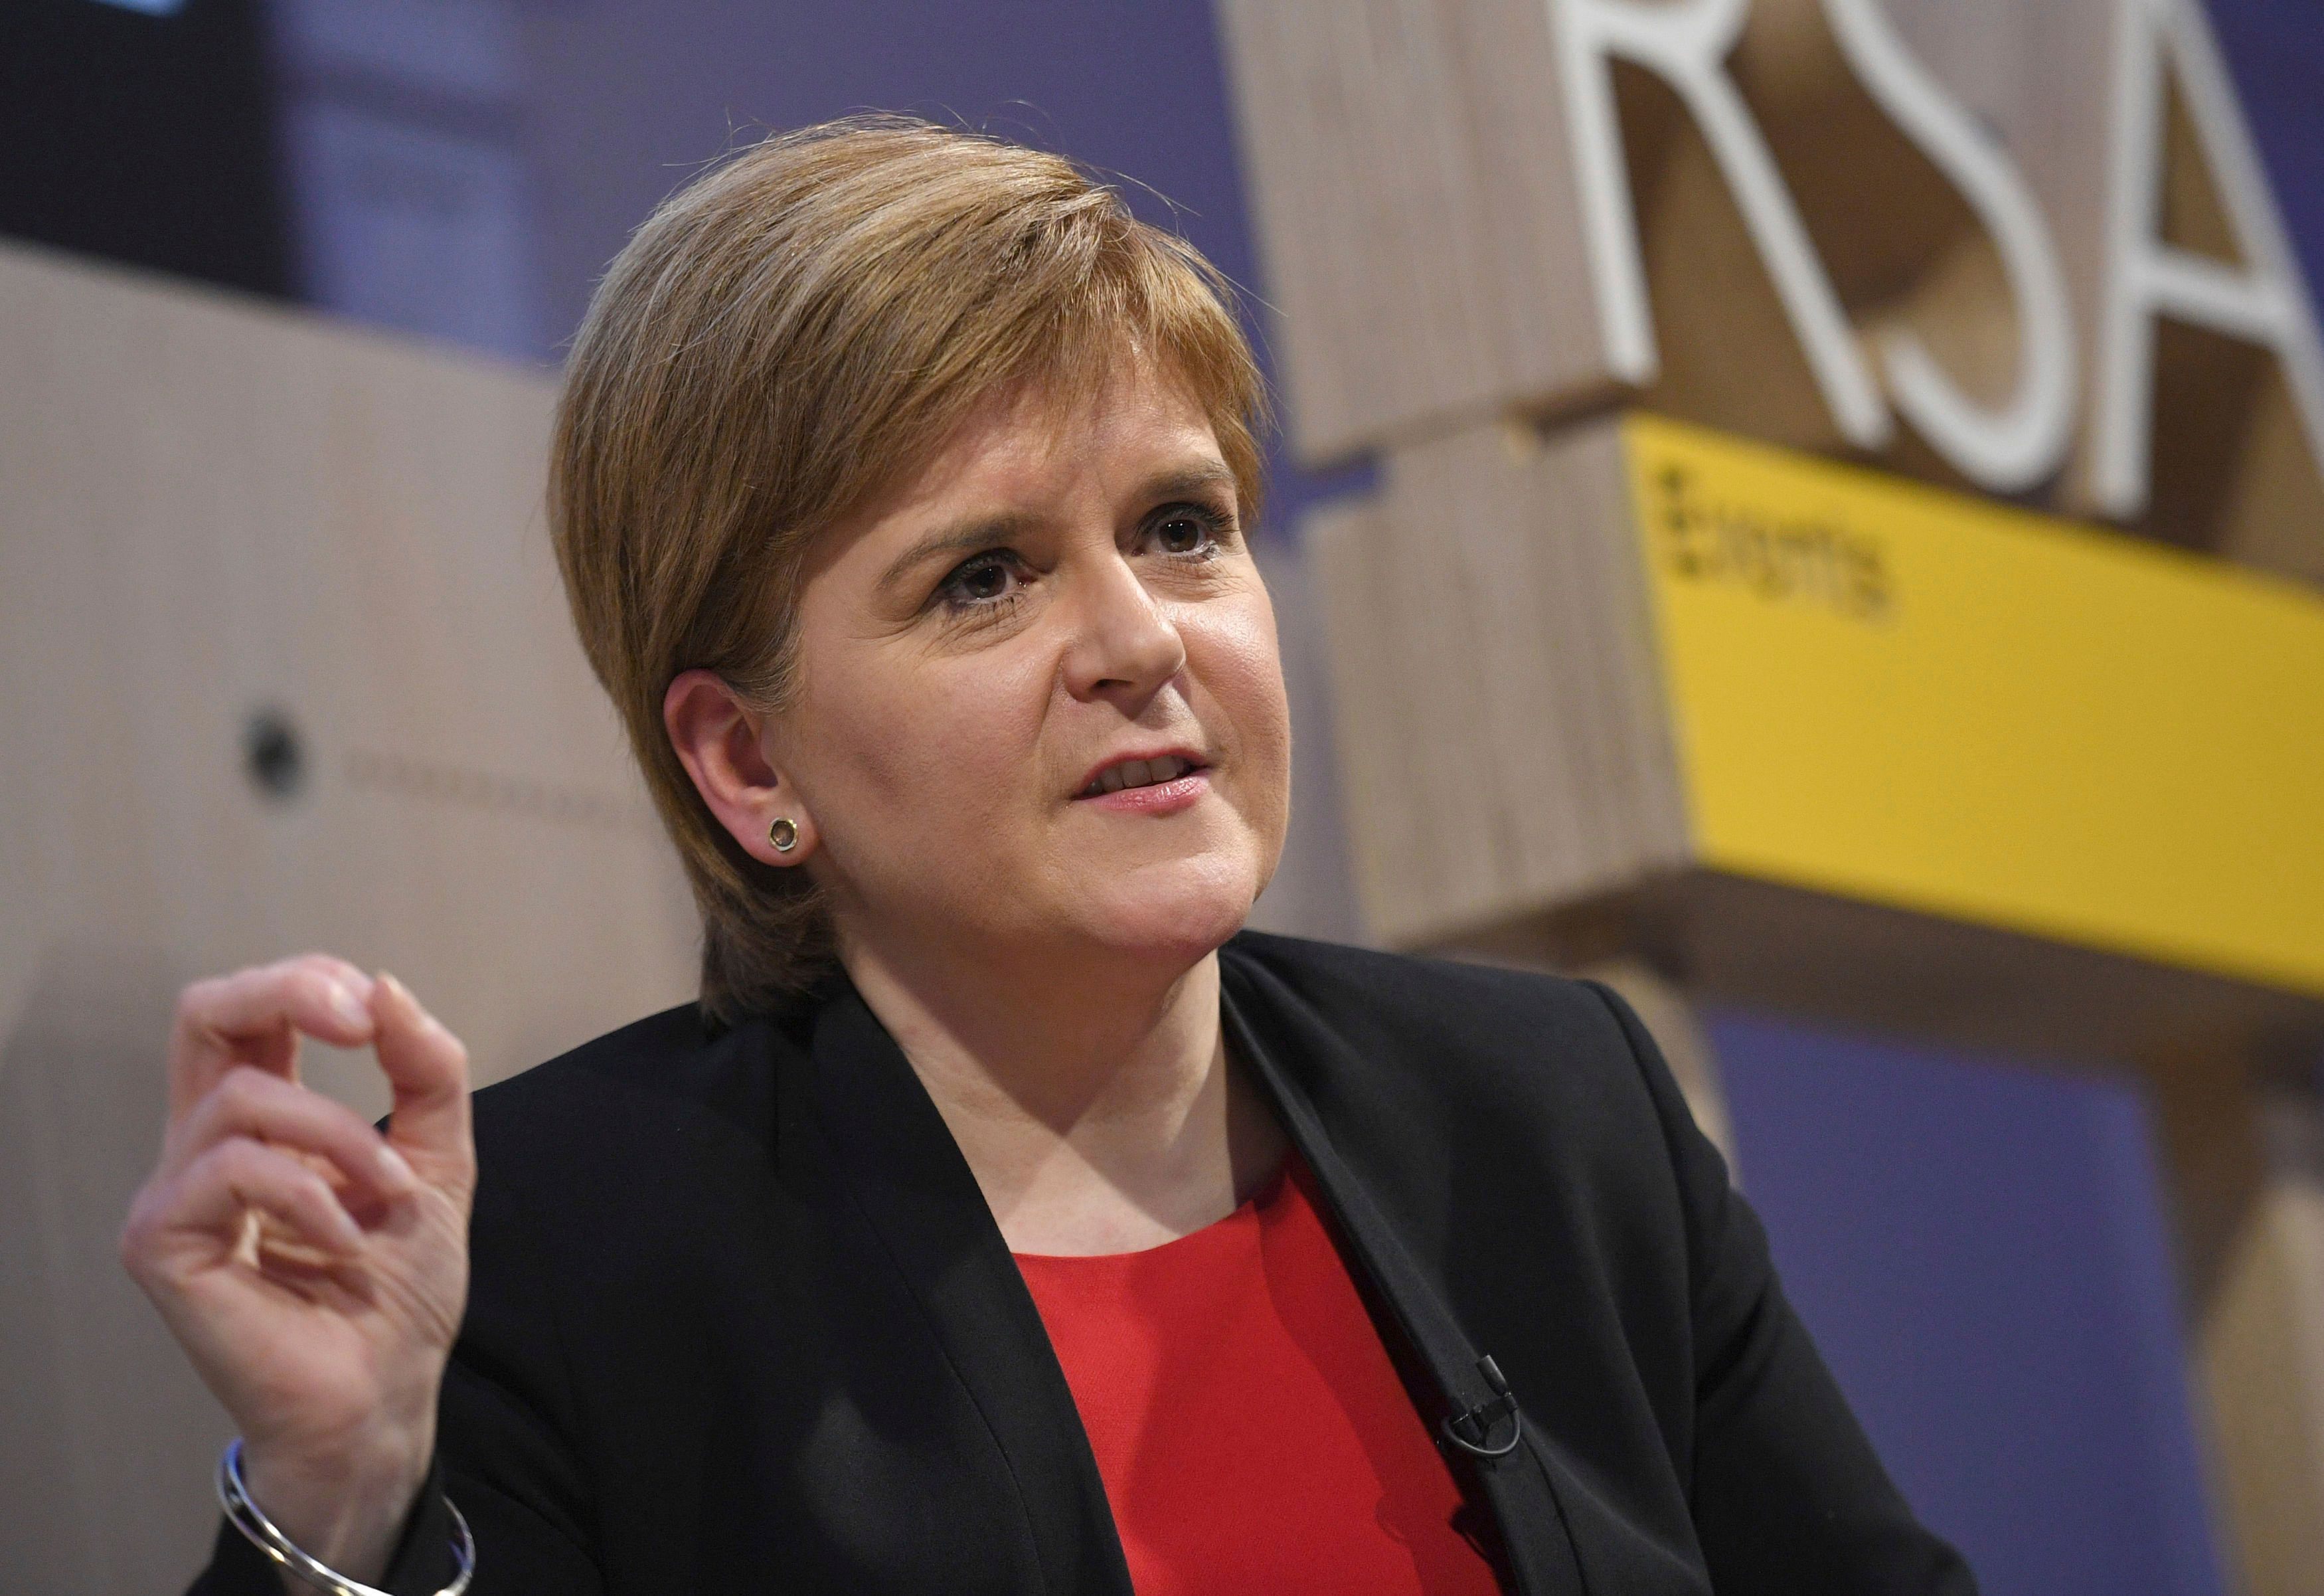 Sturgeon boycotts event in far-right row